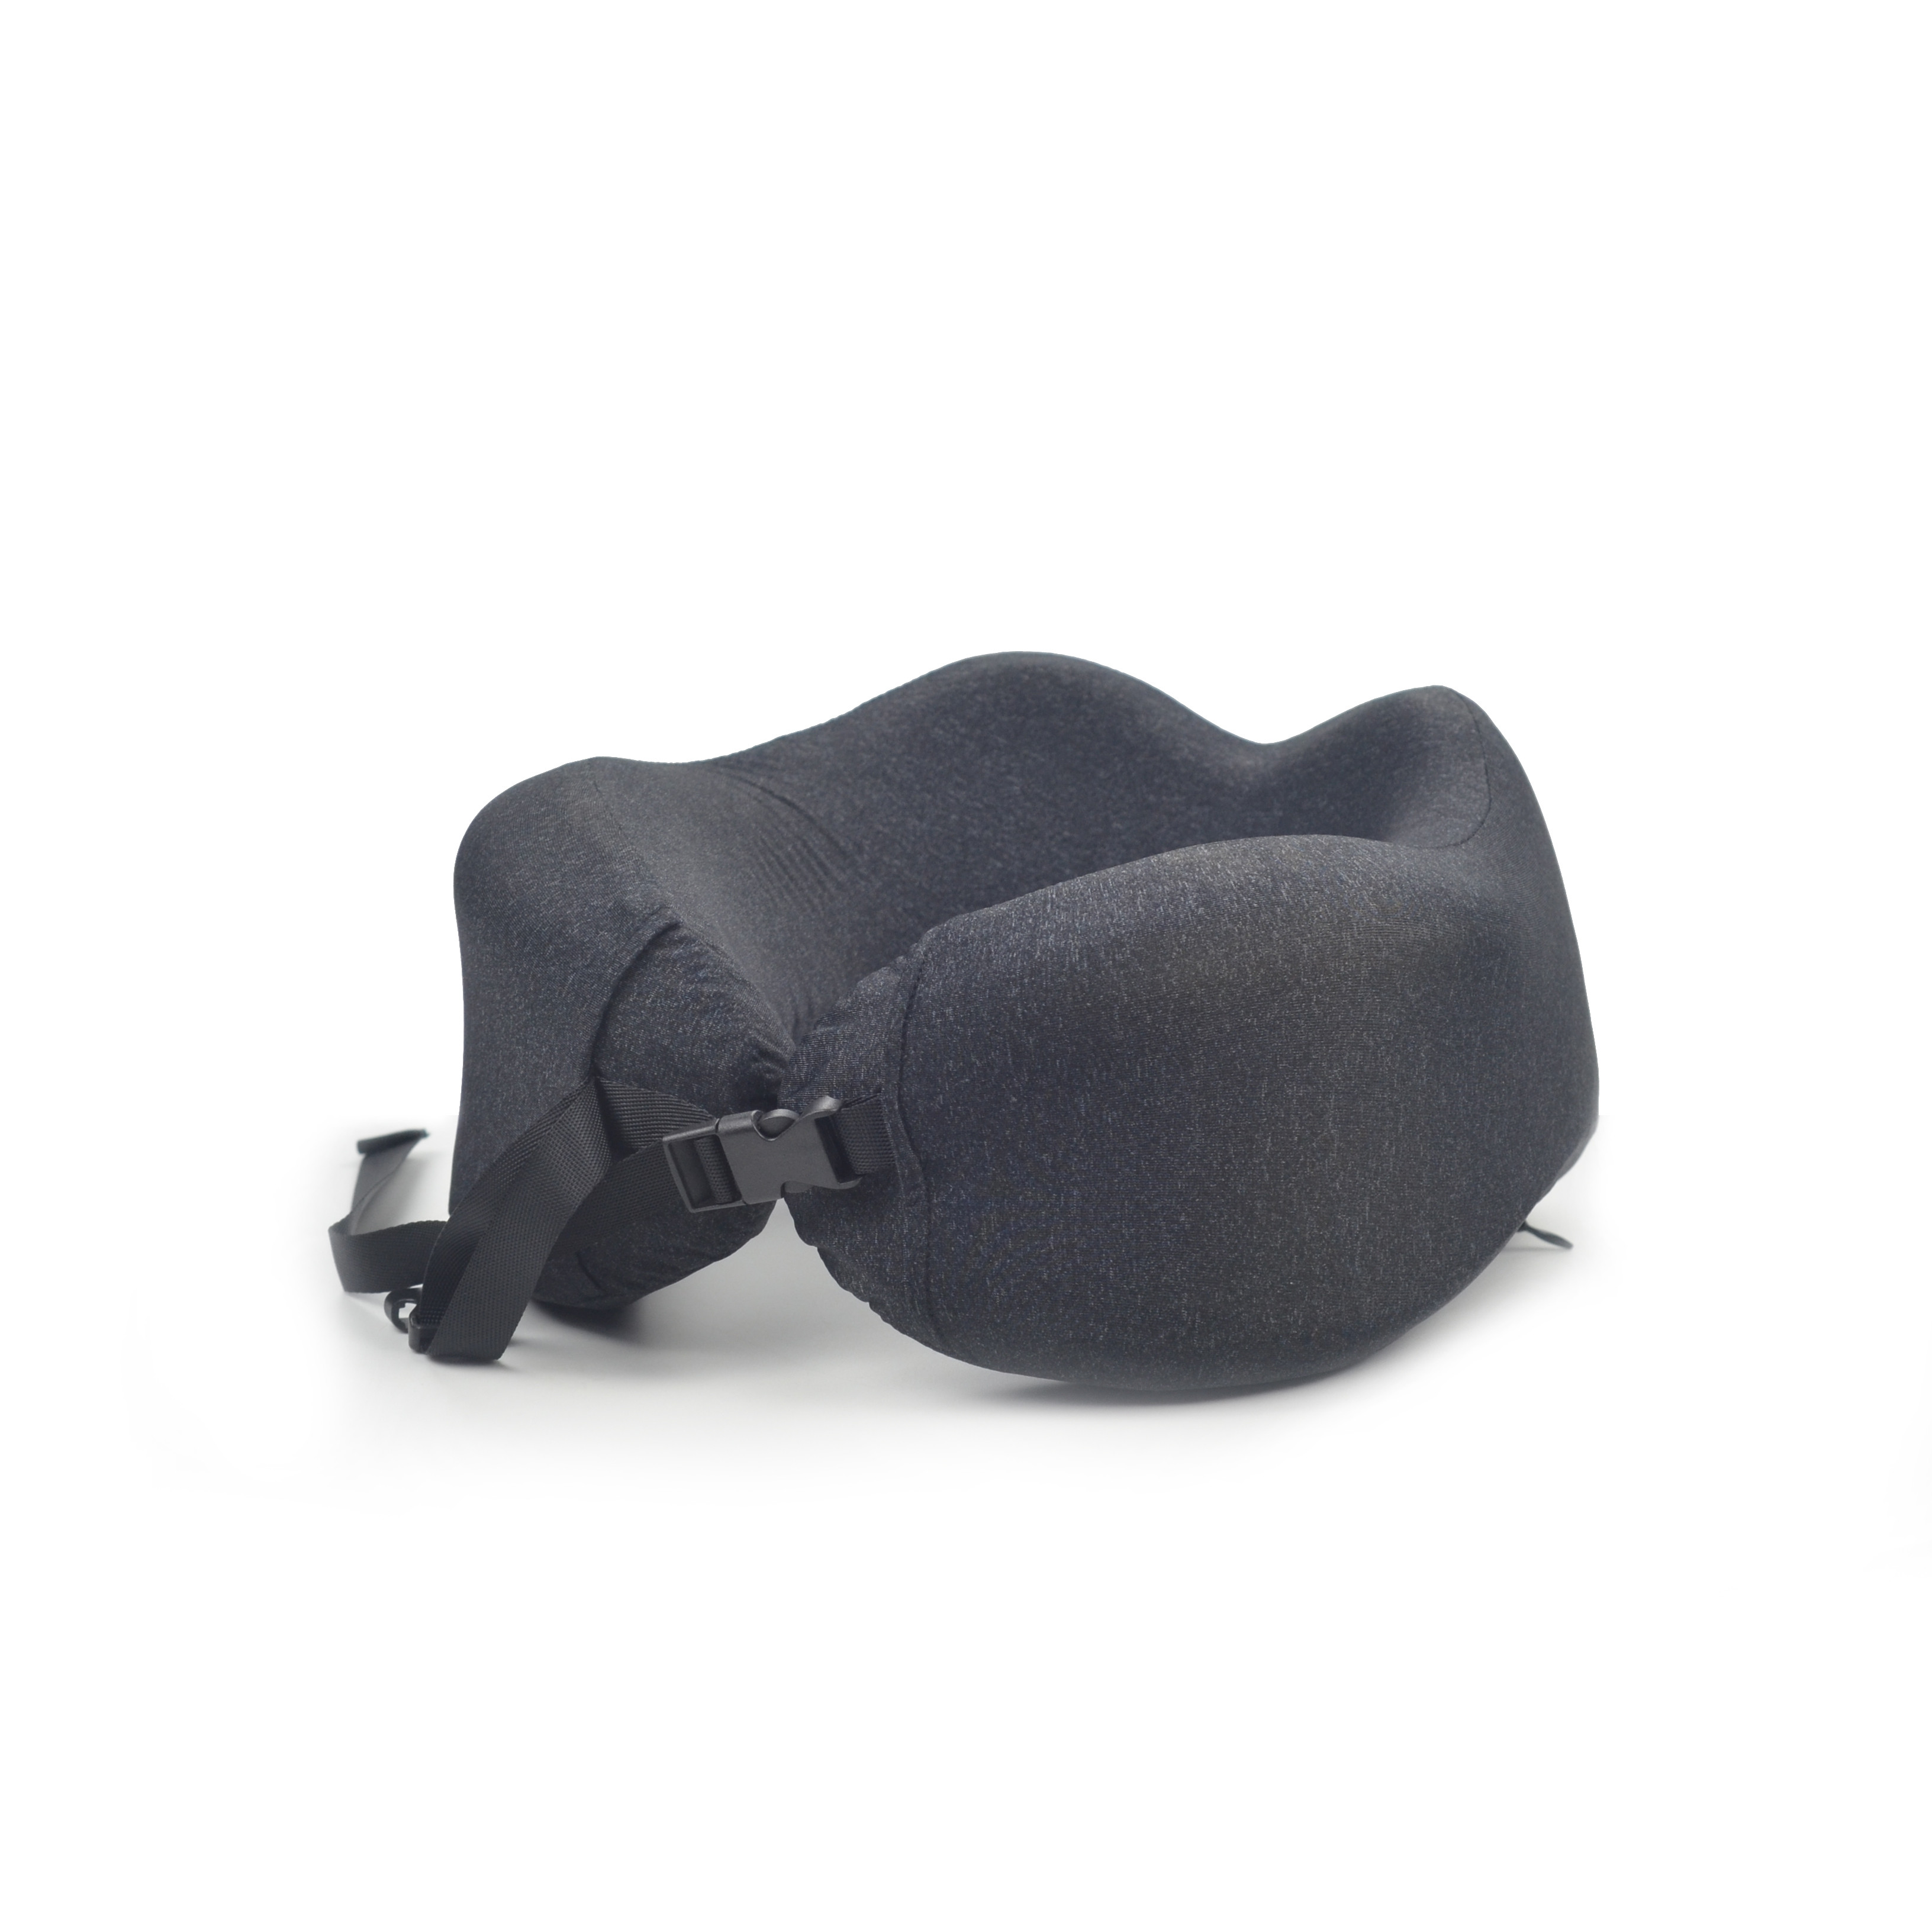 Black solid color custom travel pillow foldable travel neck pillow